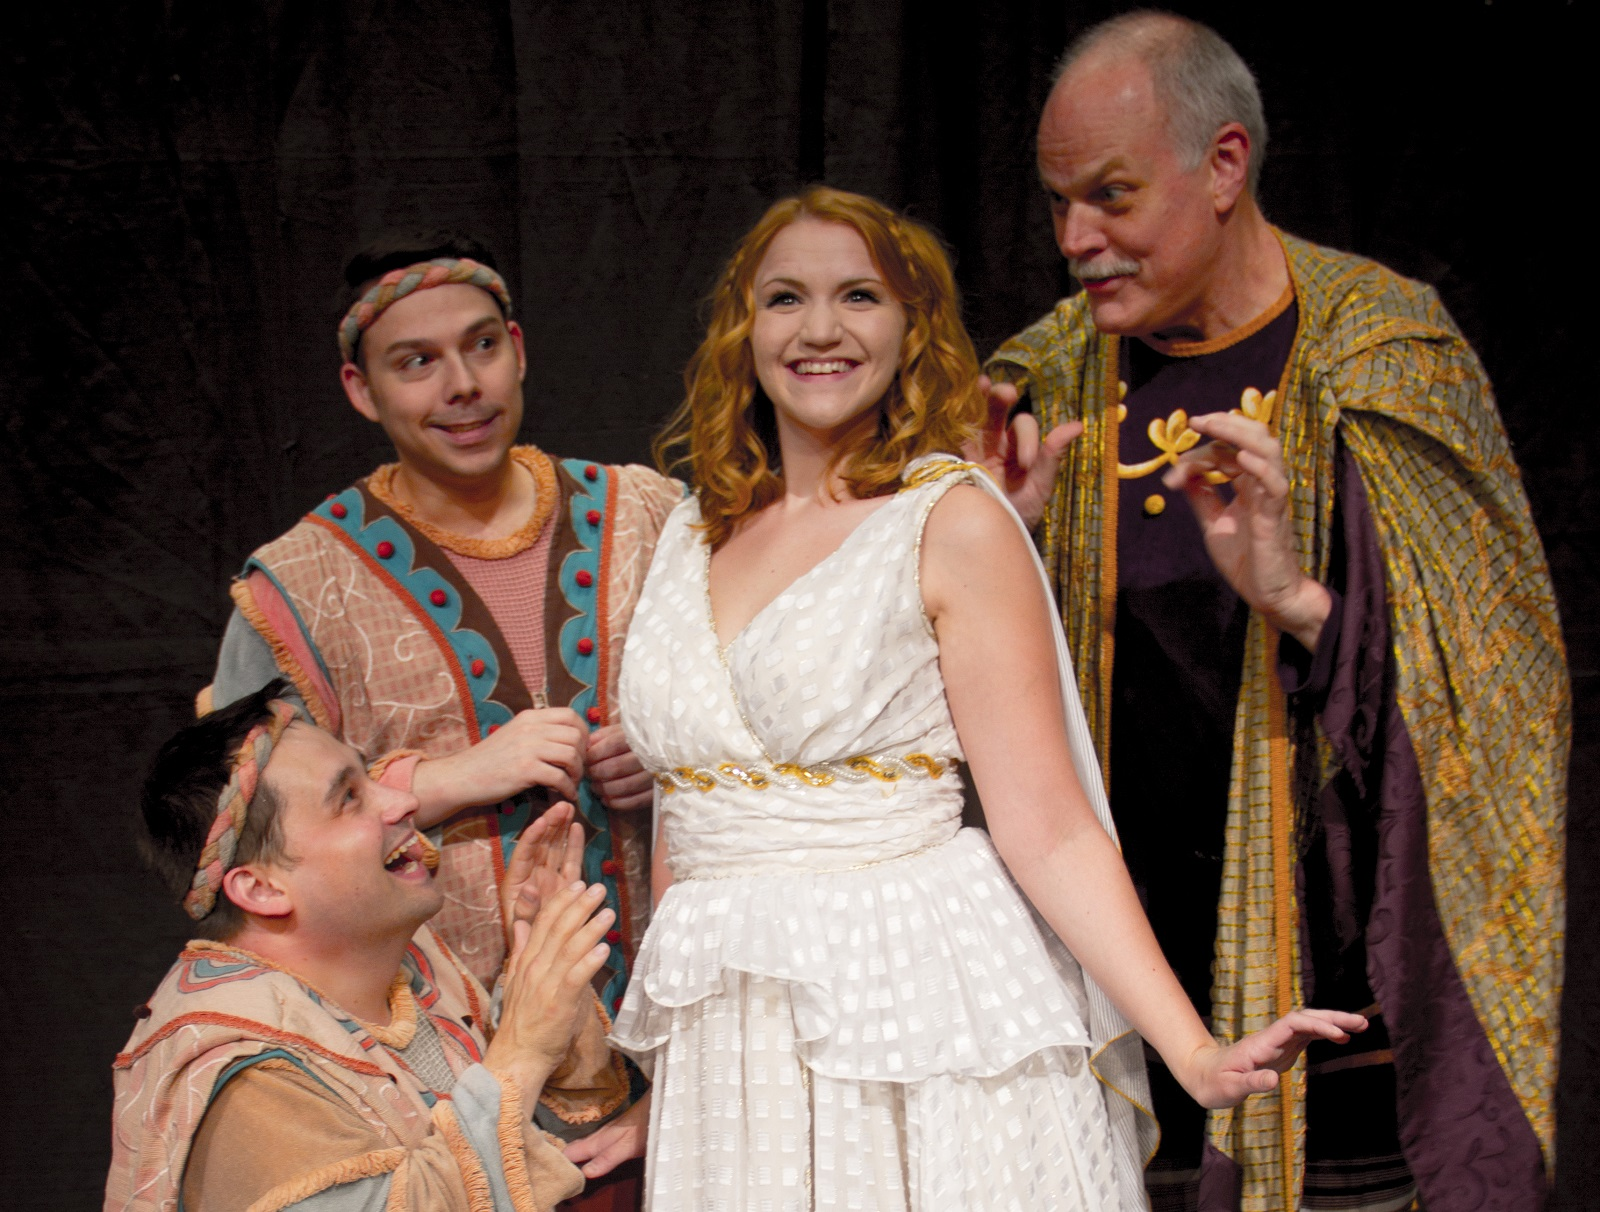 David Bondrow, Marc Sacco, Chrissy Vogric and Tim Hartman star in the Lancaster Opera House production of 'A Funny Thing Happened on the Way to the Forum.'